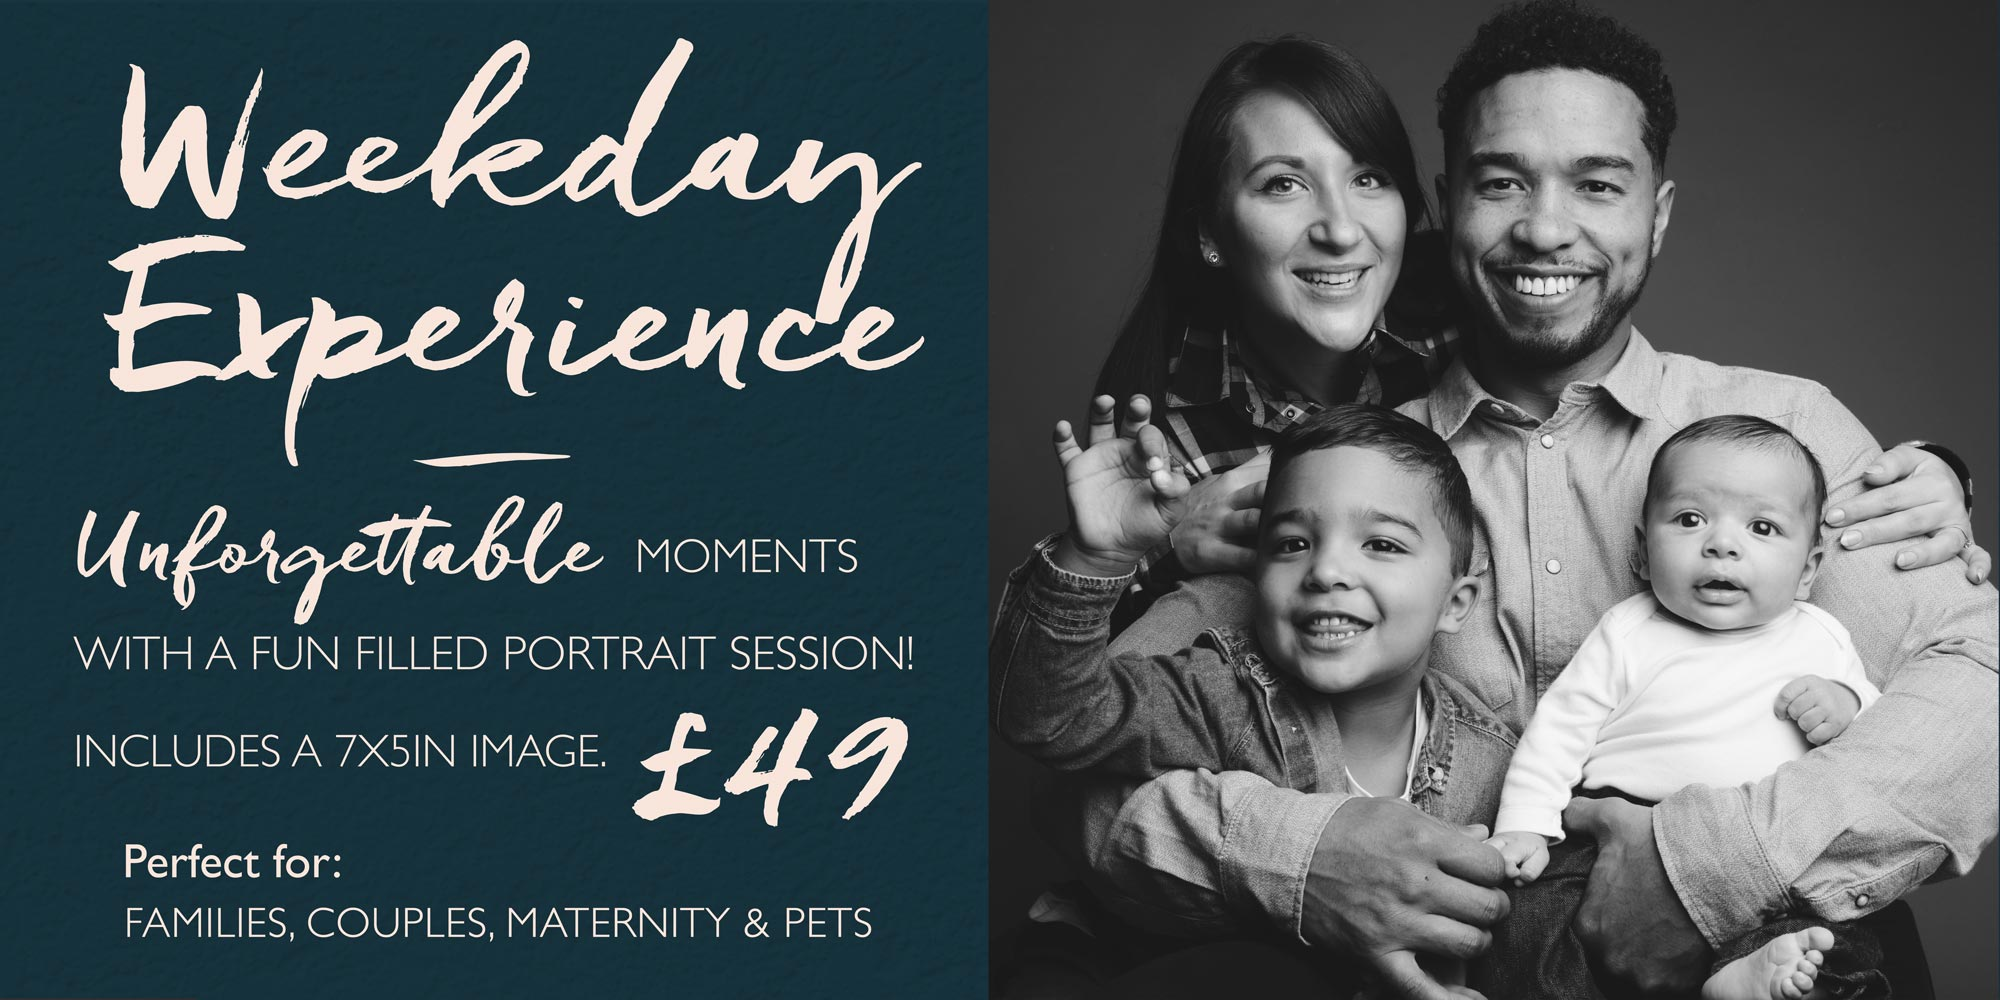 Weekday-Session-with-mounted-7x5in-£49